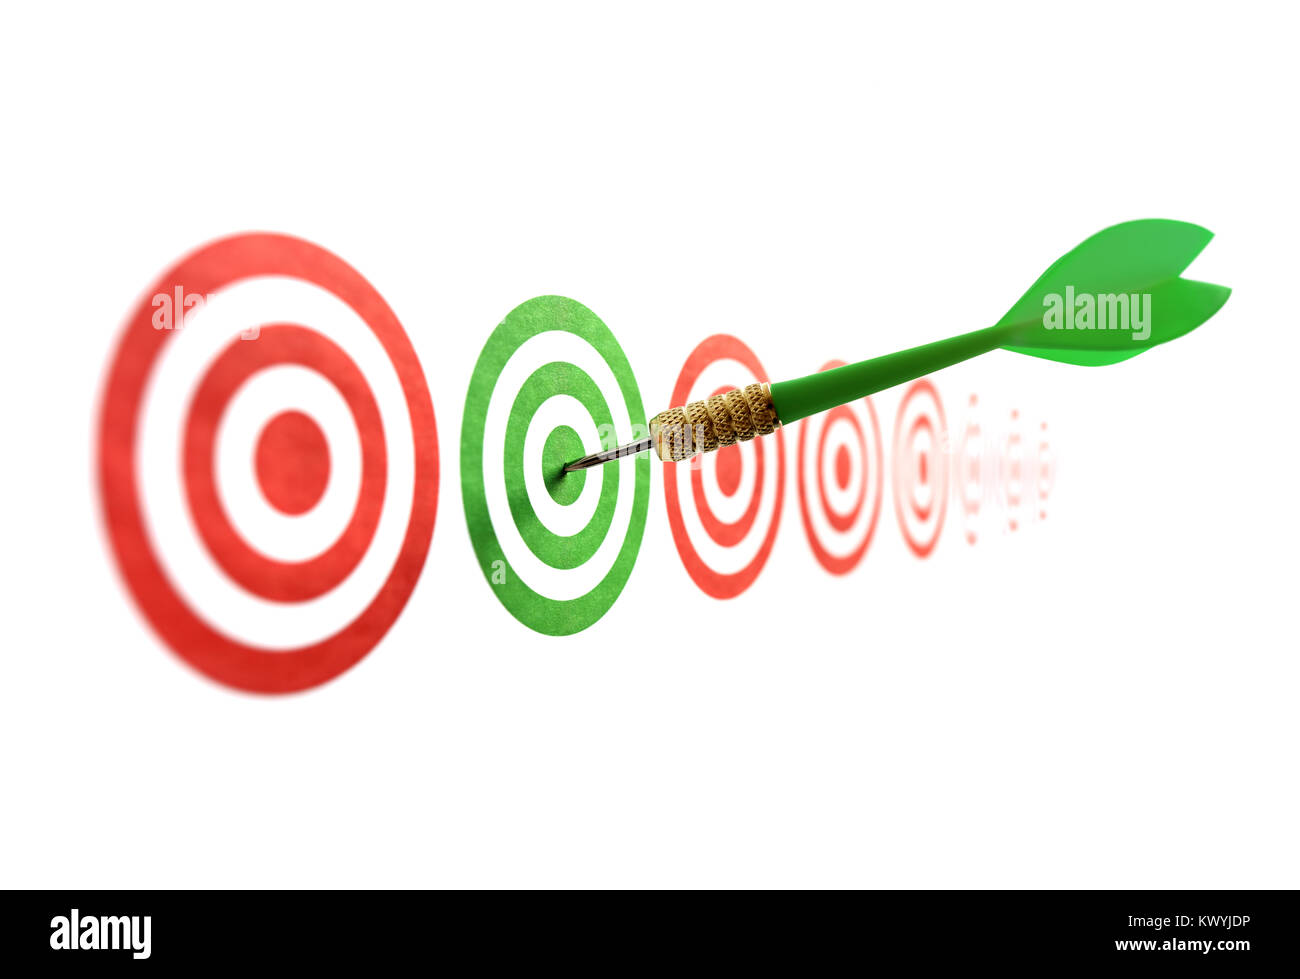 Green dart in target concept for accuracy, accomplishment and business success - Stock Image